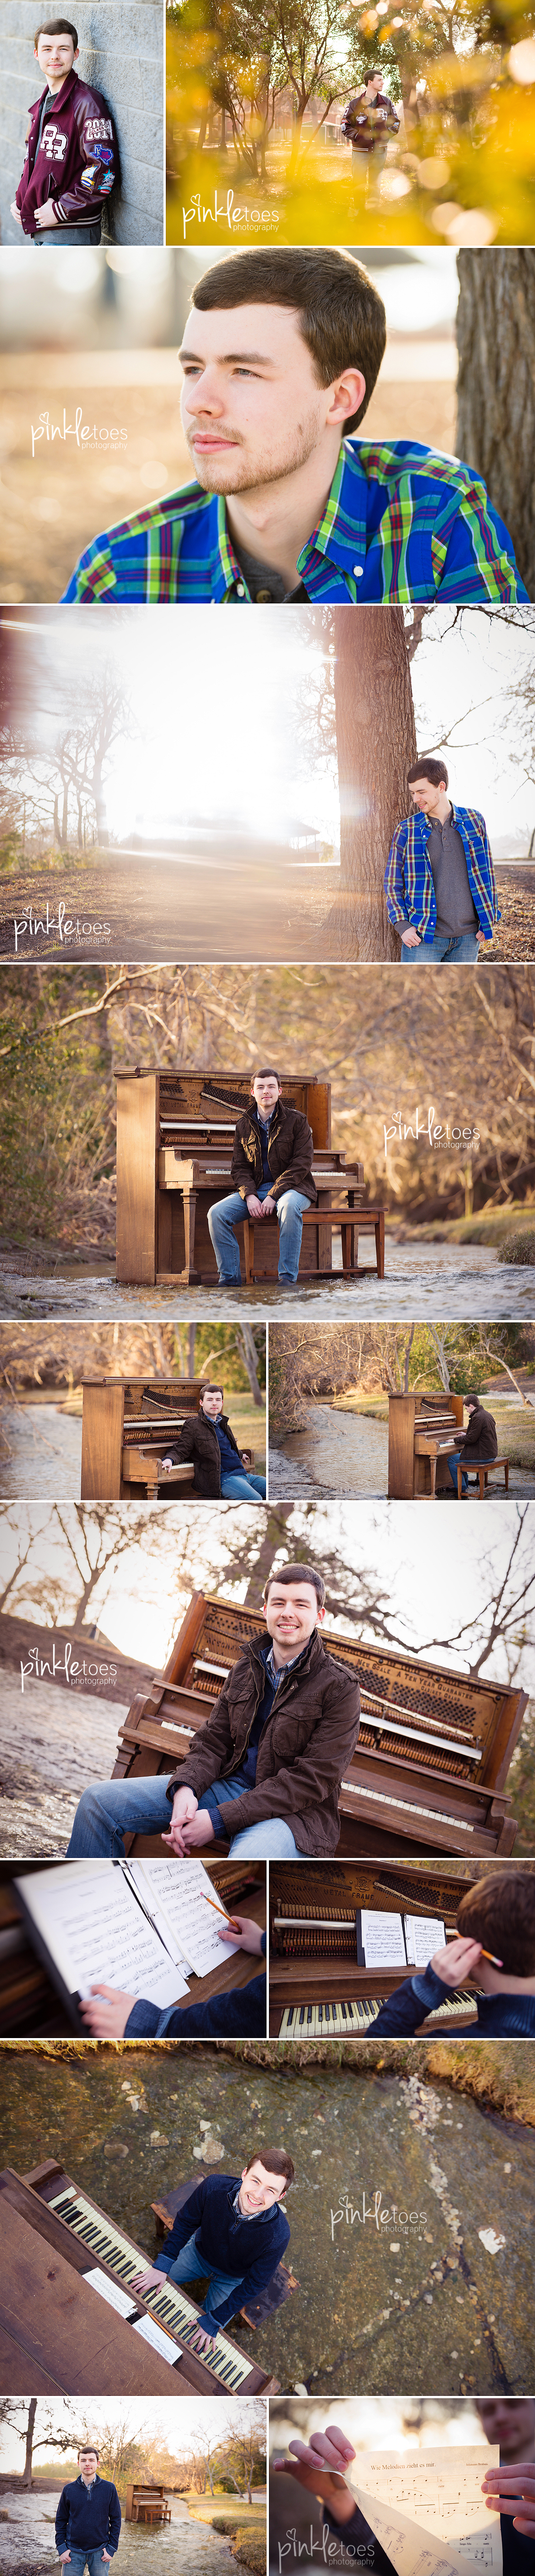 sh-austin-georgetown-round-rock-candid-senior-portraits-piano-creek